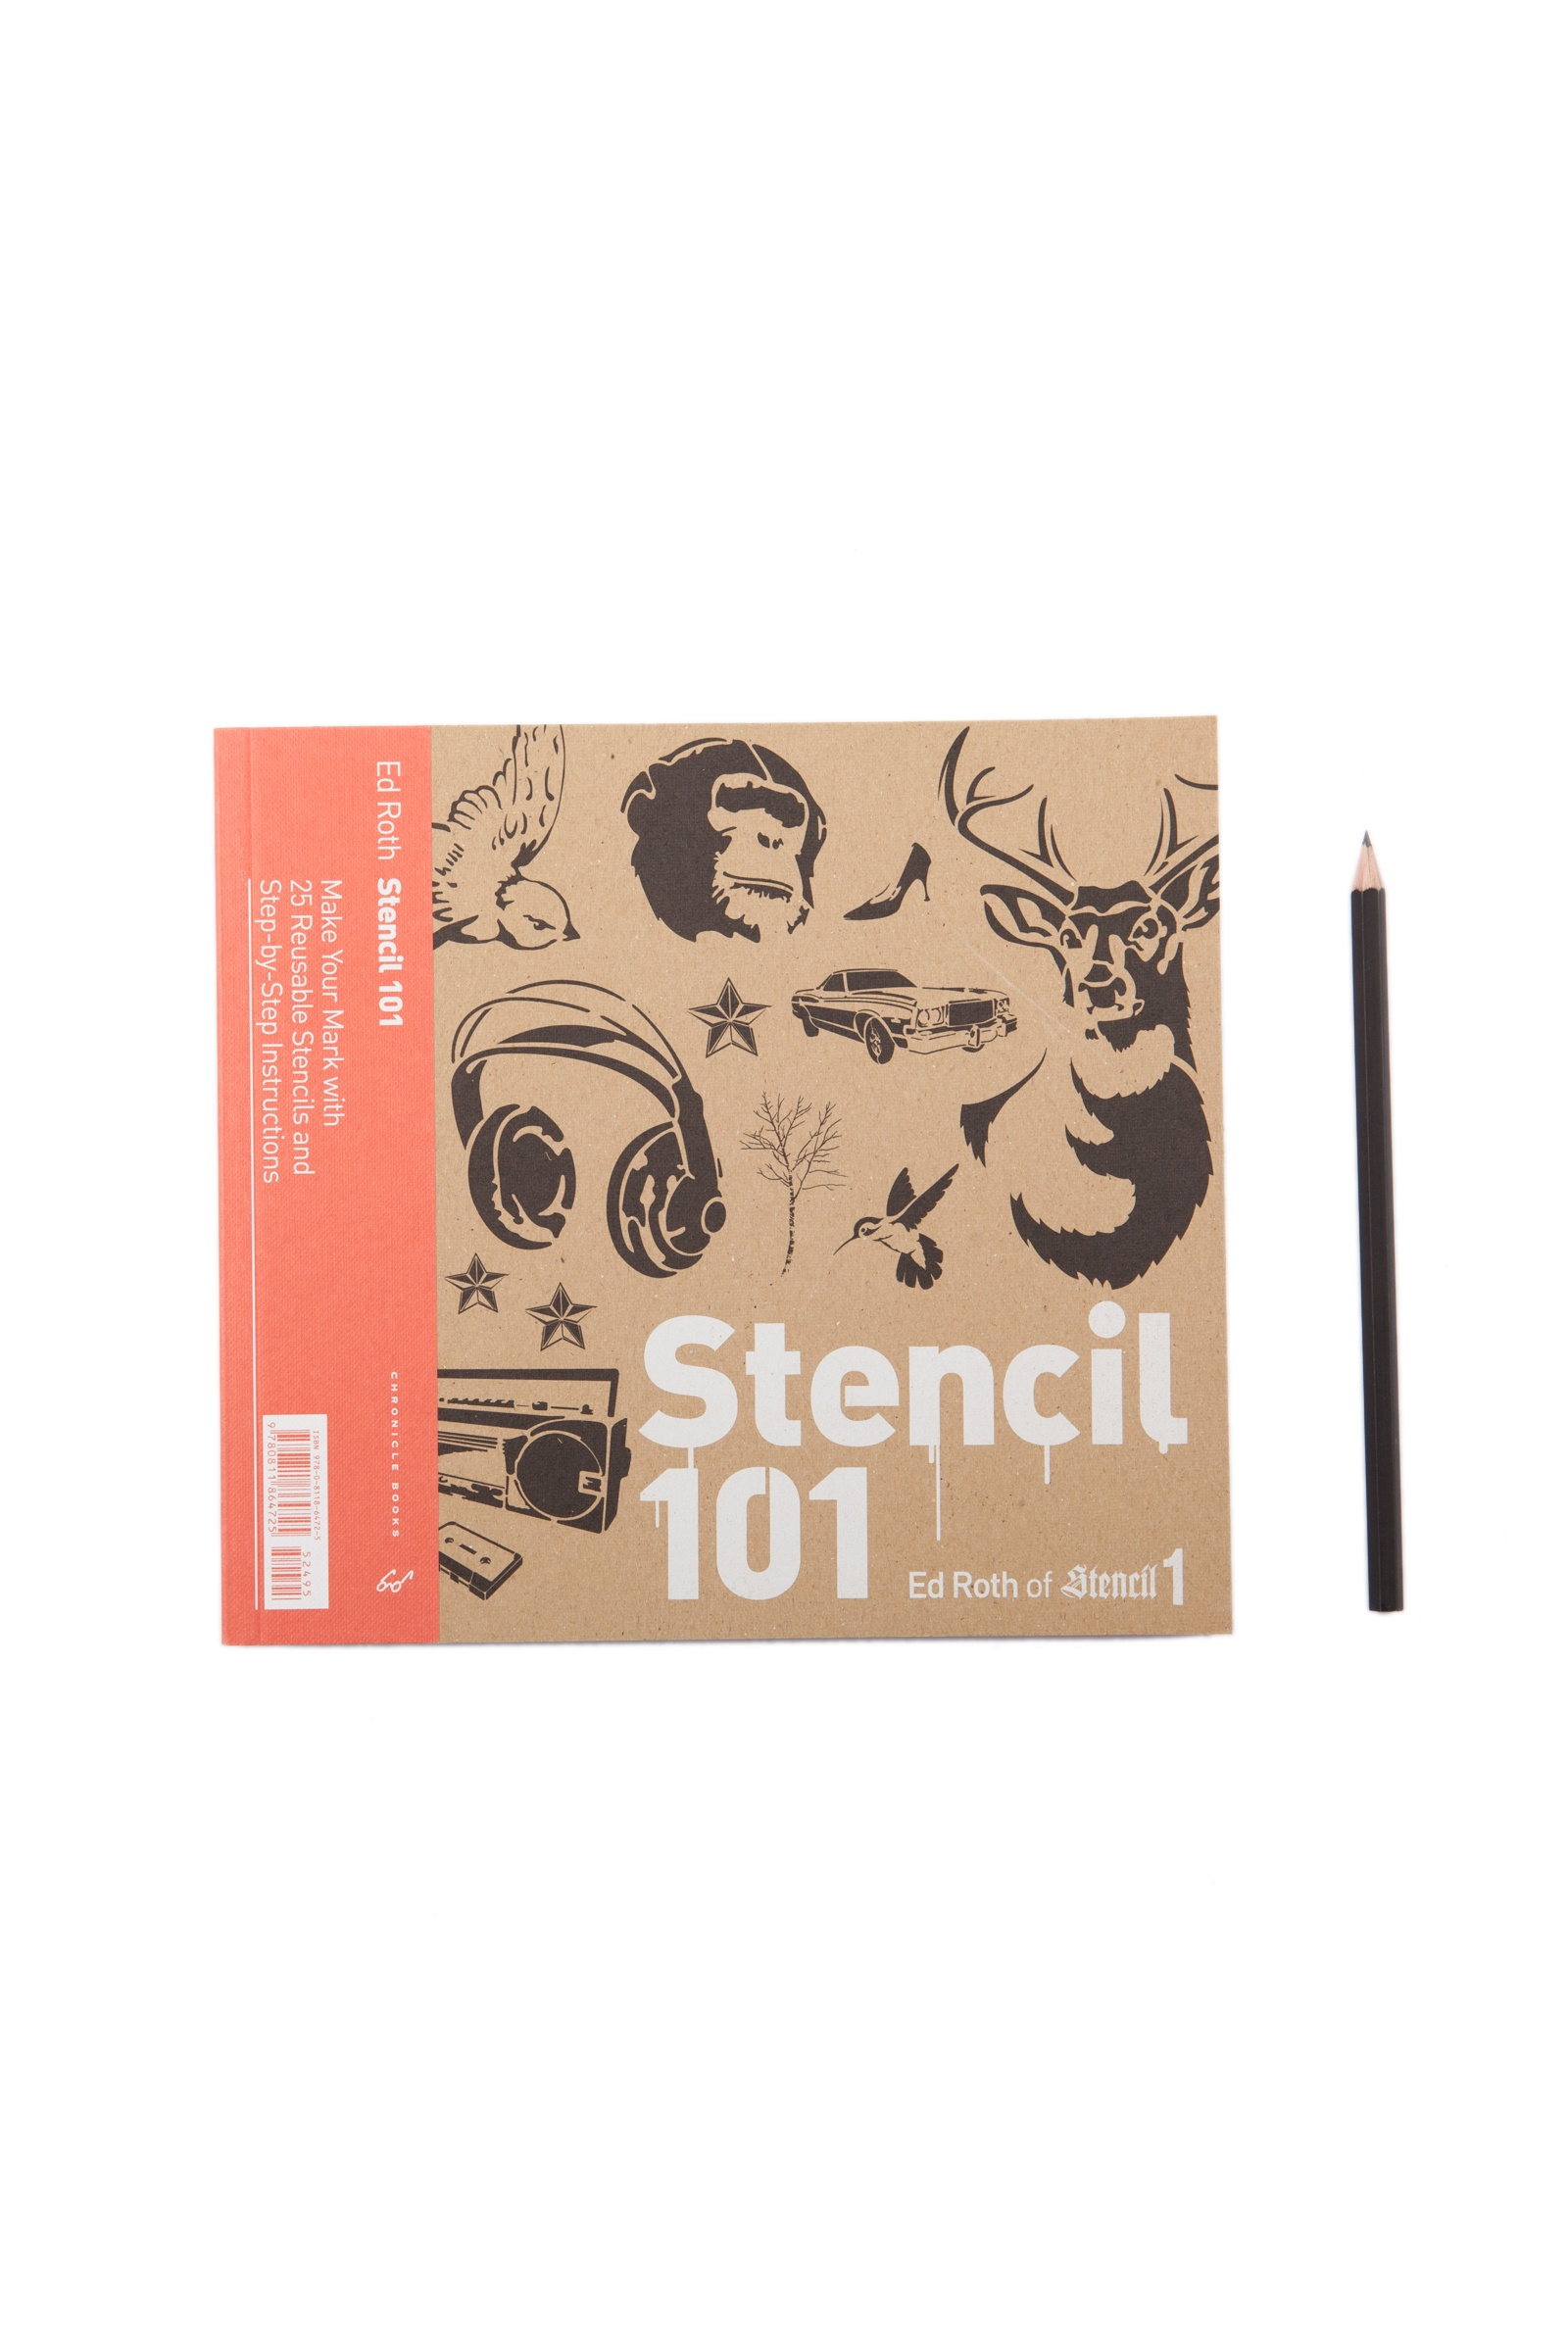 Stencil 101Make Your Mark with 25 Reusable Stencils and